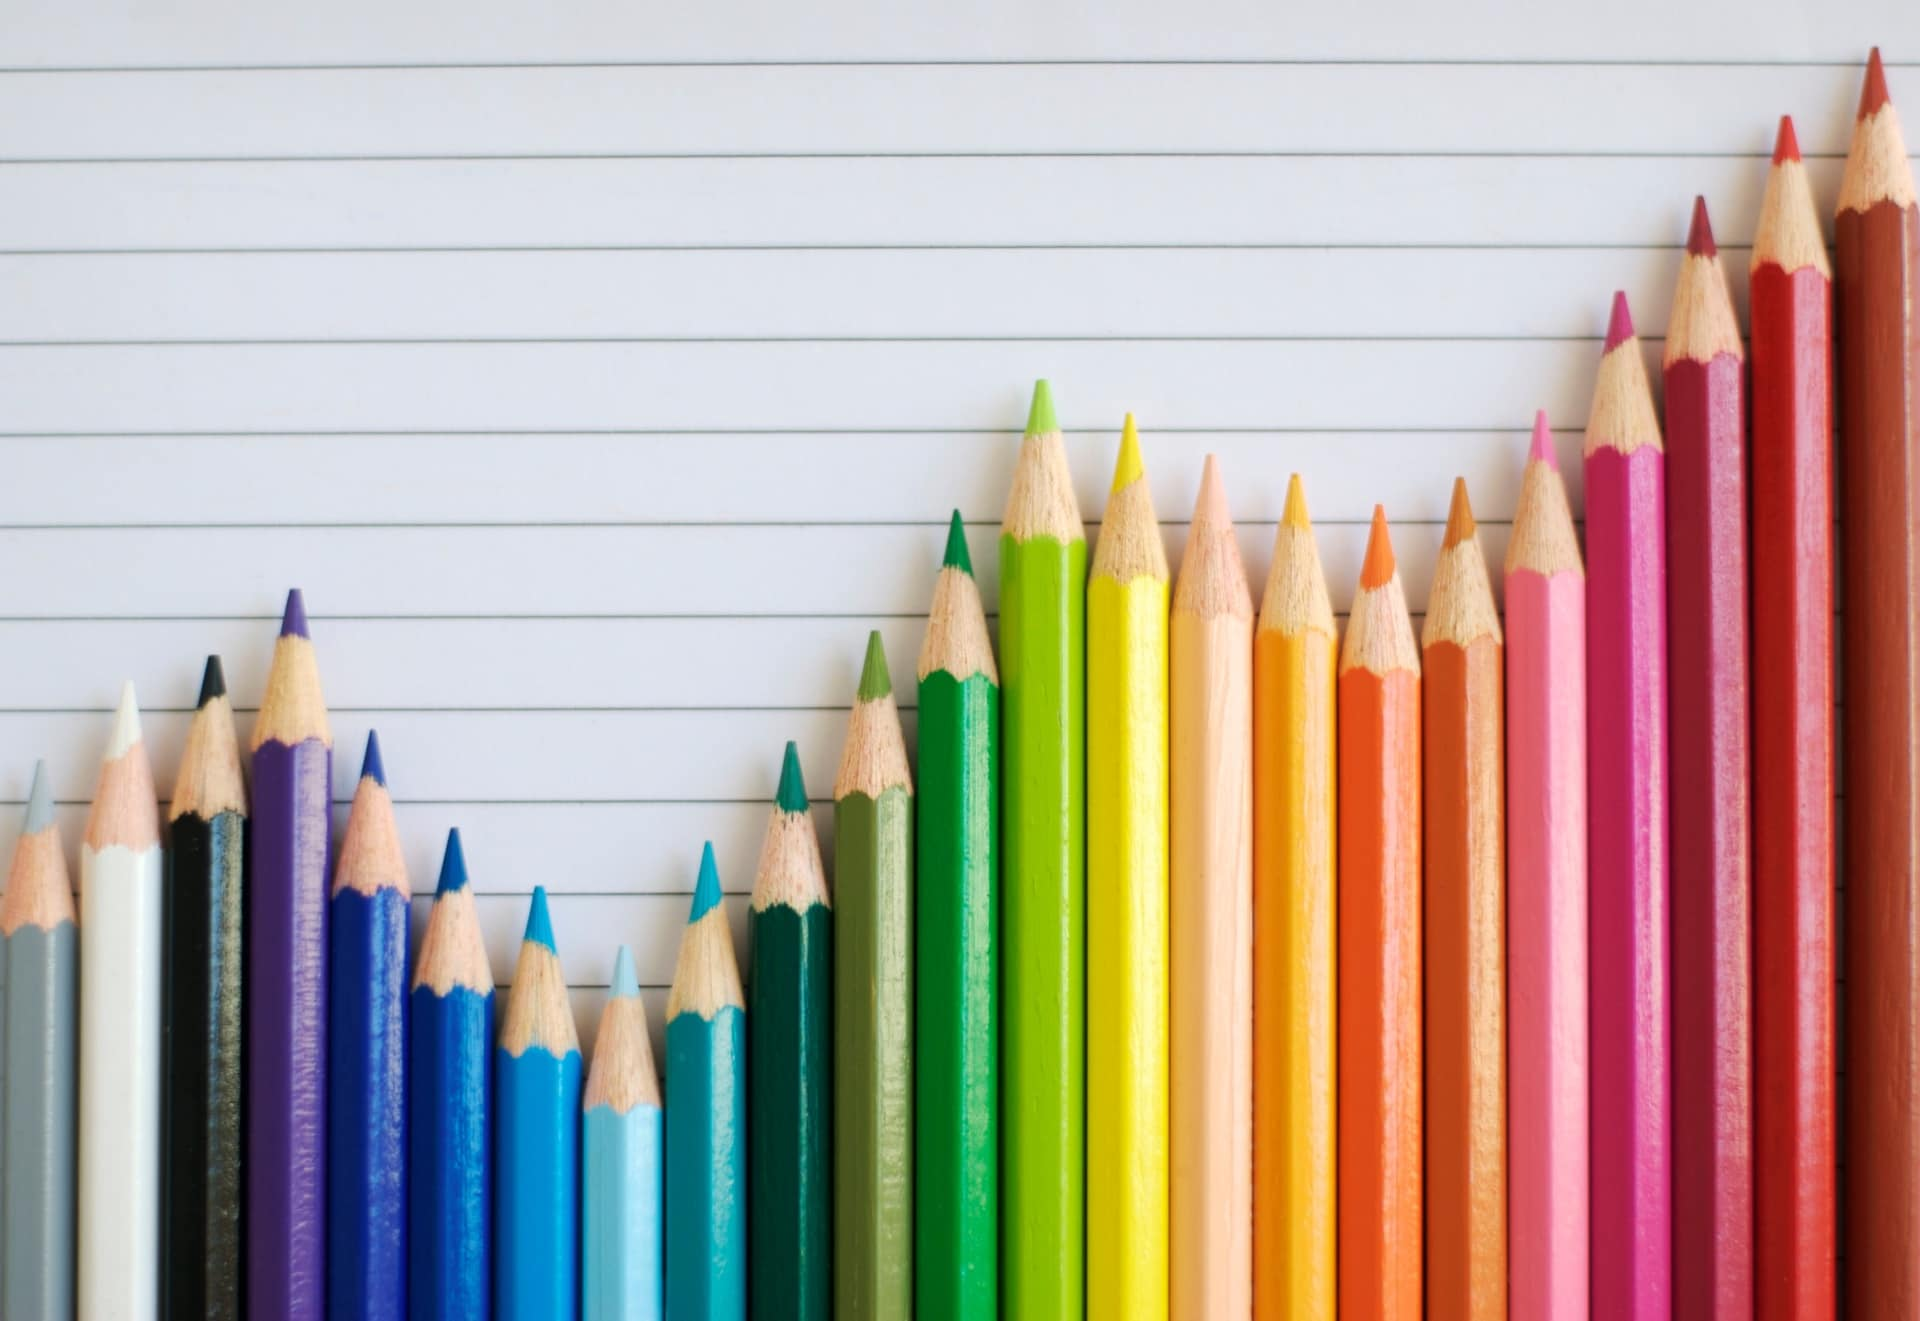 a group of colored pencils arranged in the form of a line graph